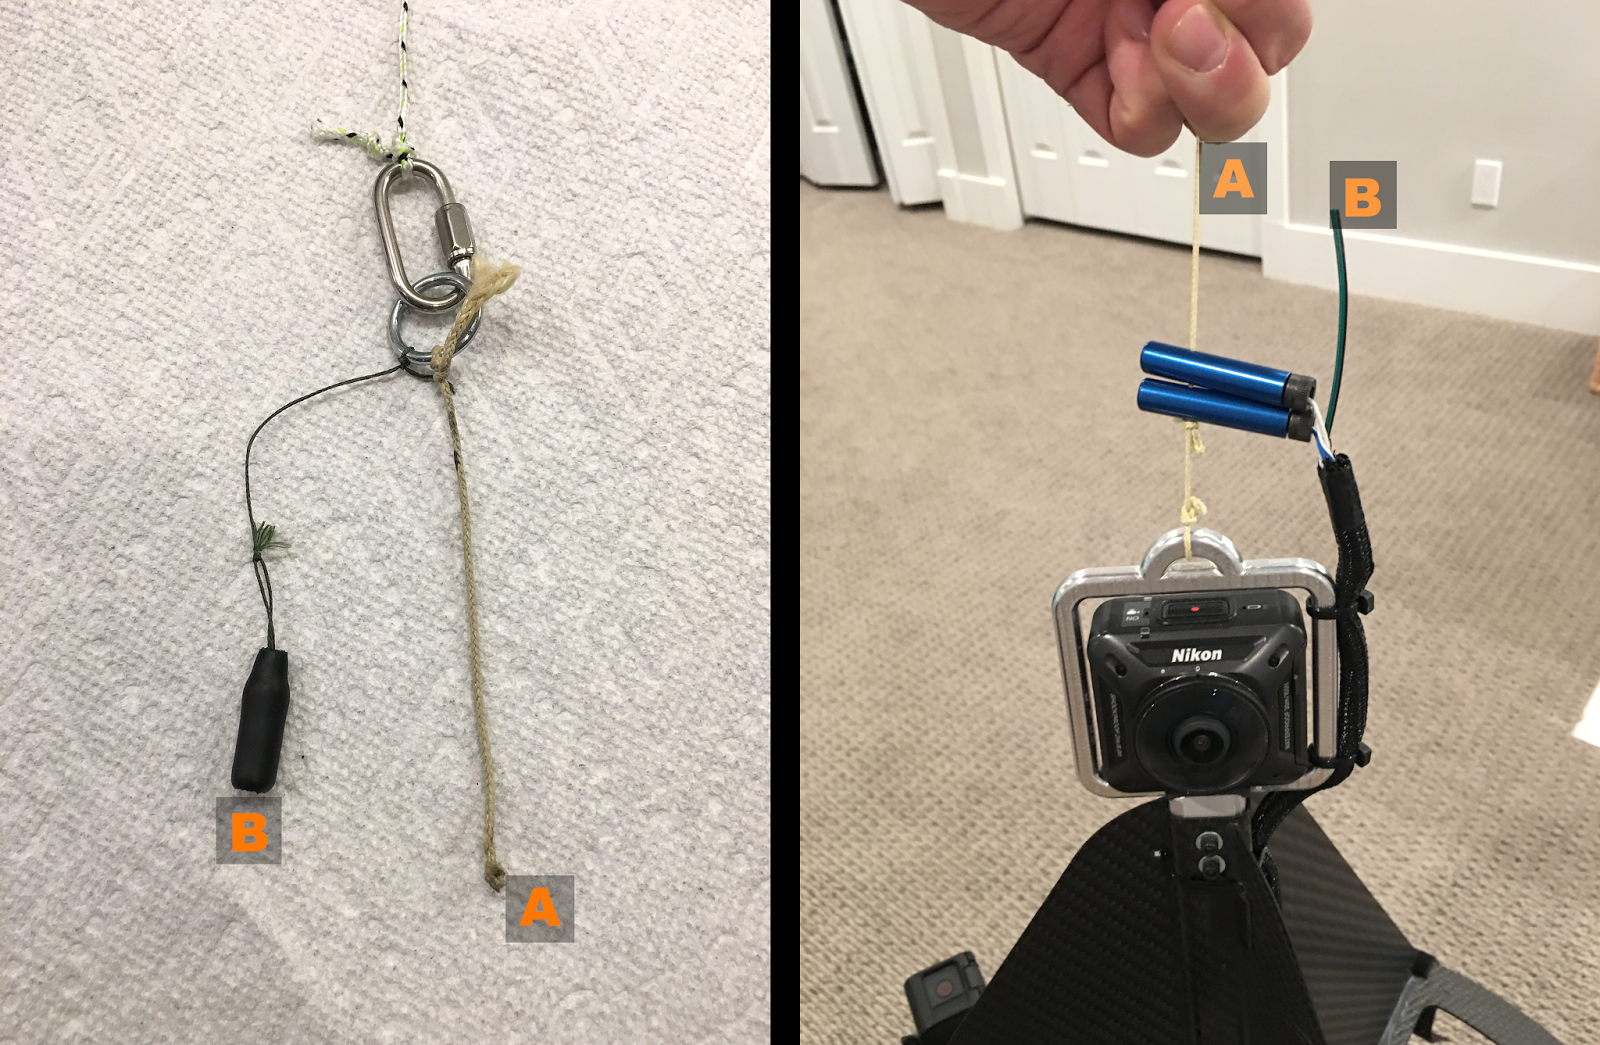 String A ties to the HAPP tether ring in the right frame. Cap B goes over a photoresistor which is not yet present at B in the right pane. Blue cylinders are the cutdown pyros.